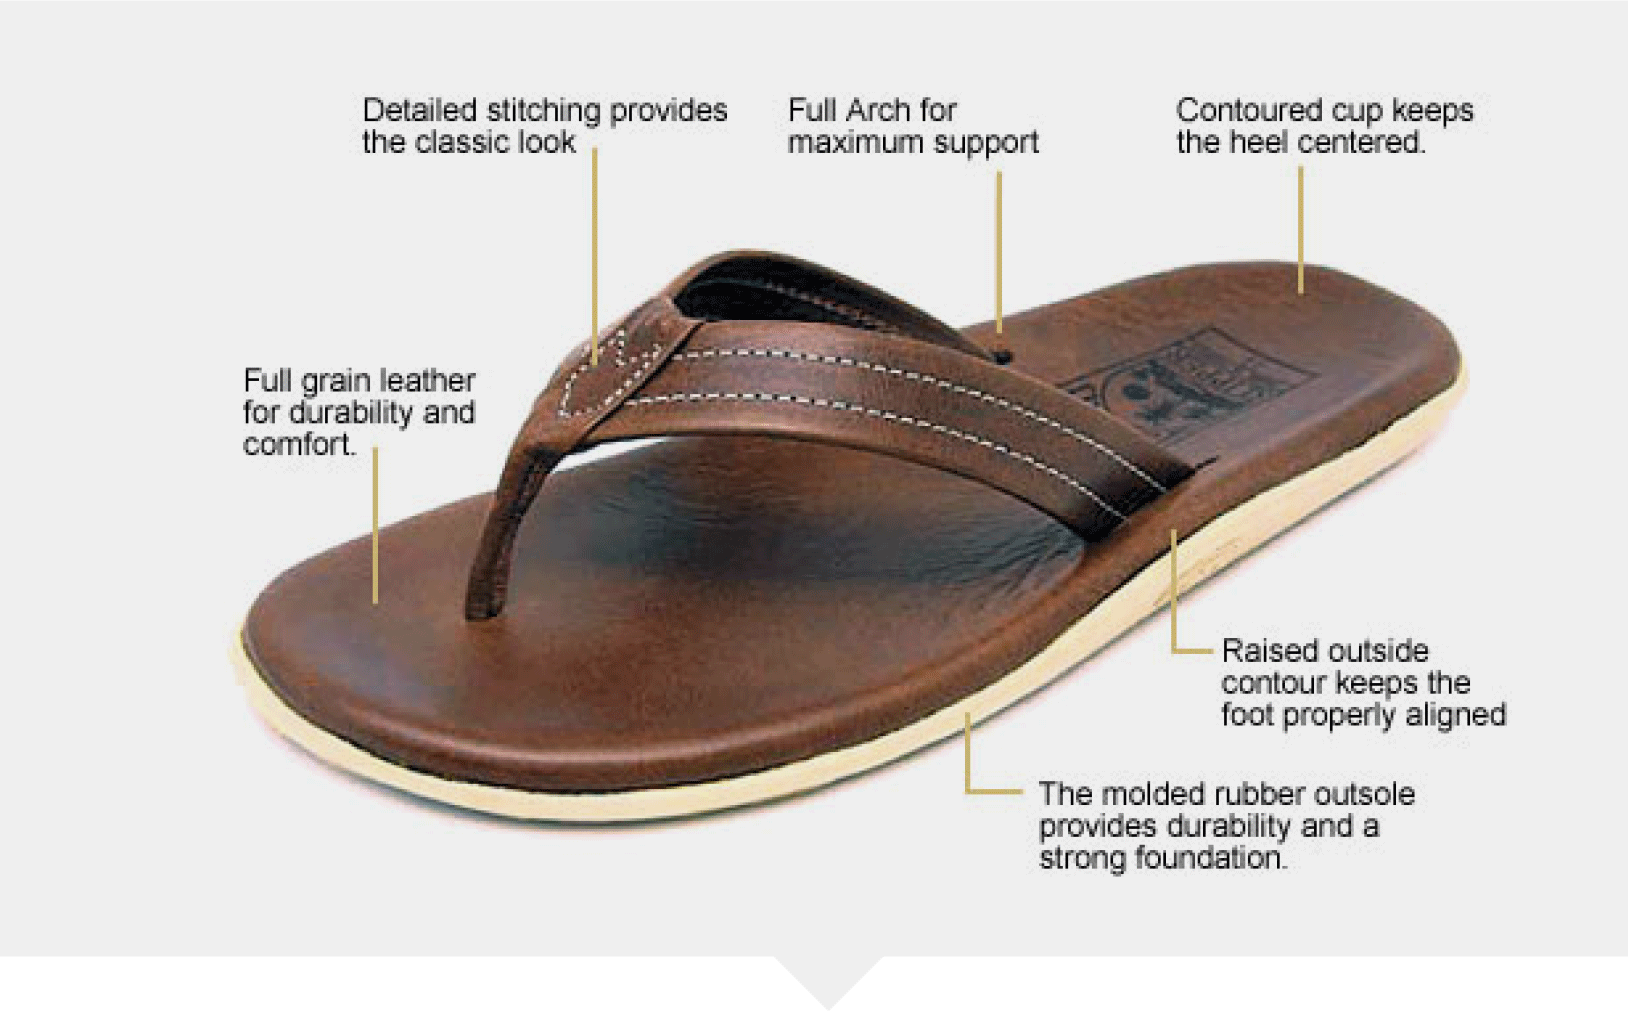 original Classic sandal features from 1988